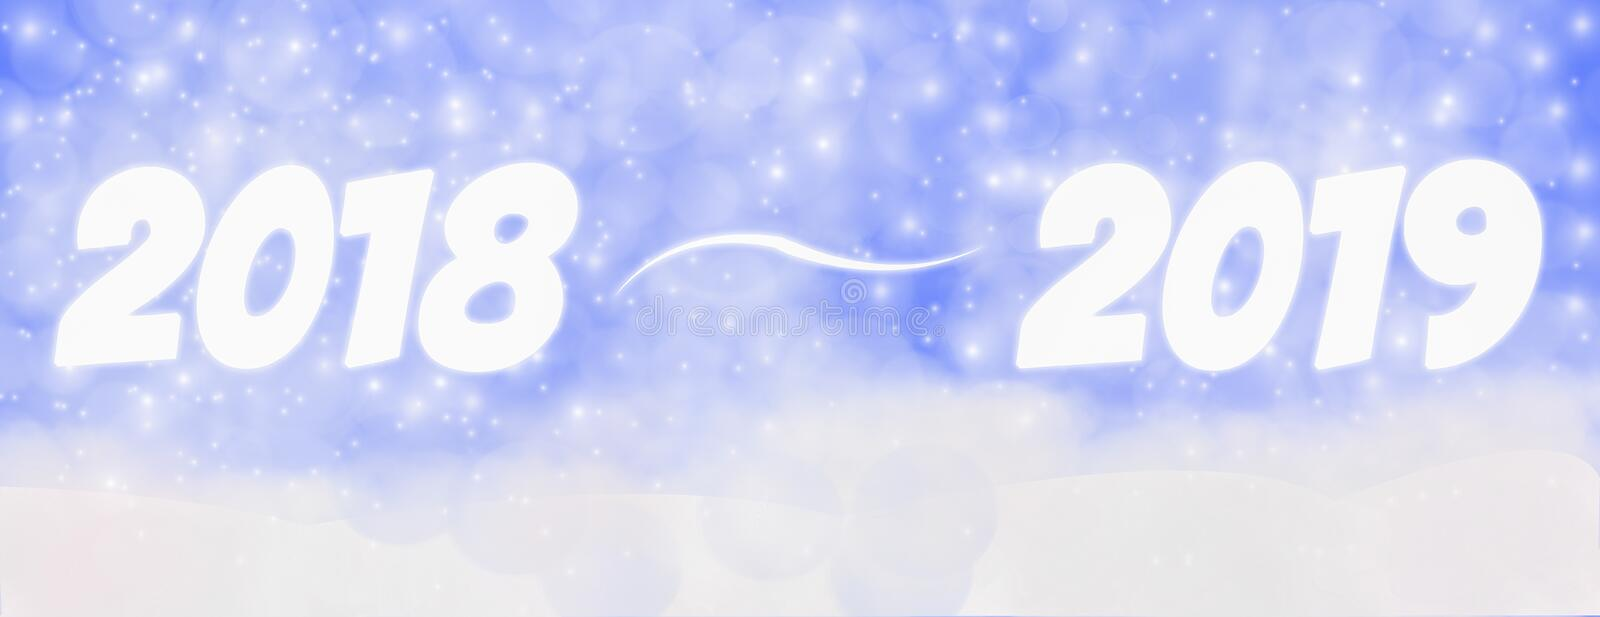 Happy new year 2018 - 2019 winter outdoor with falling snowflake vector illustration